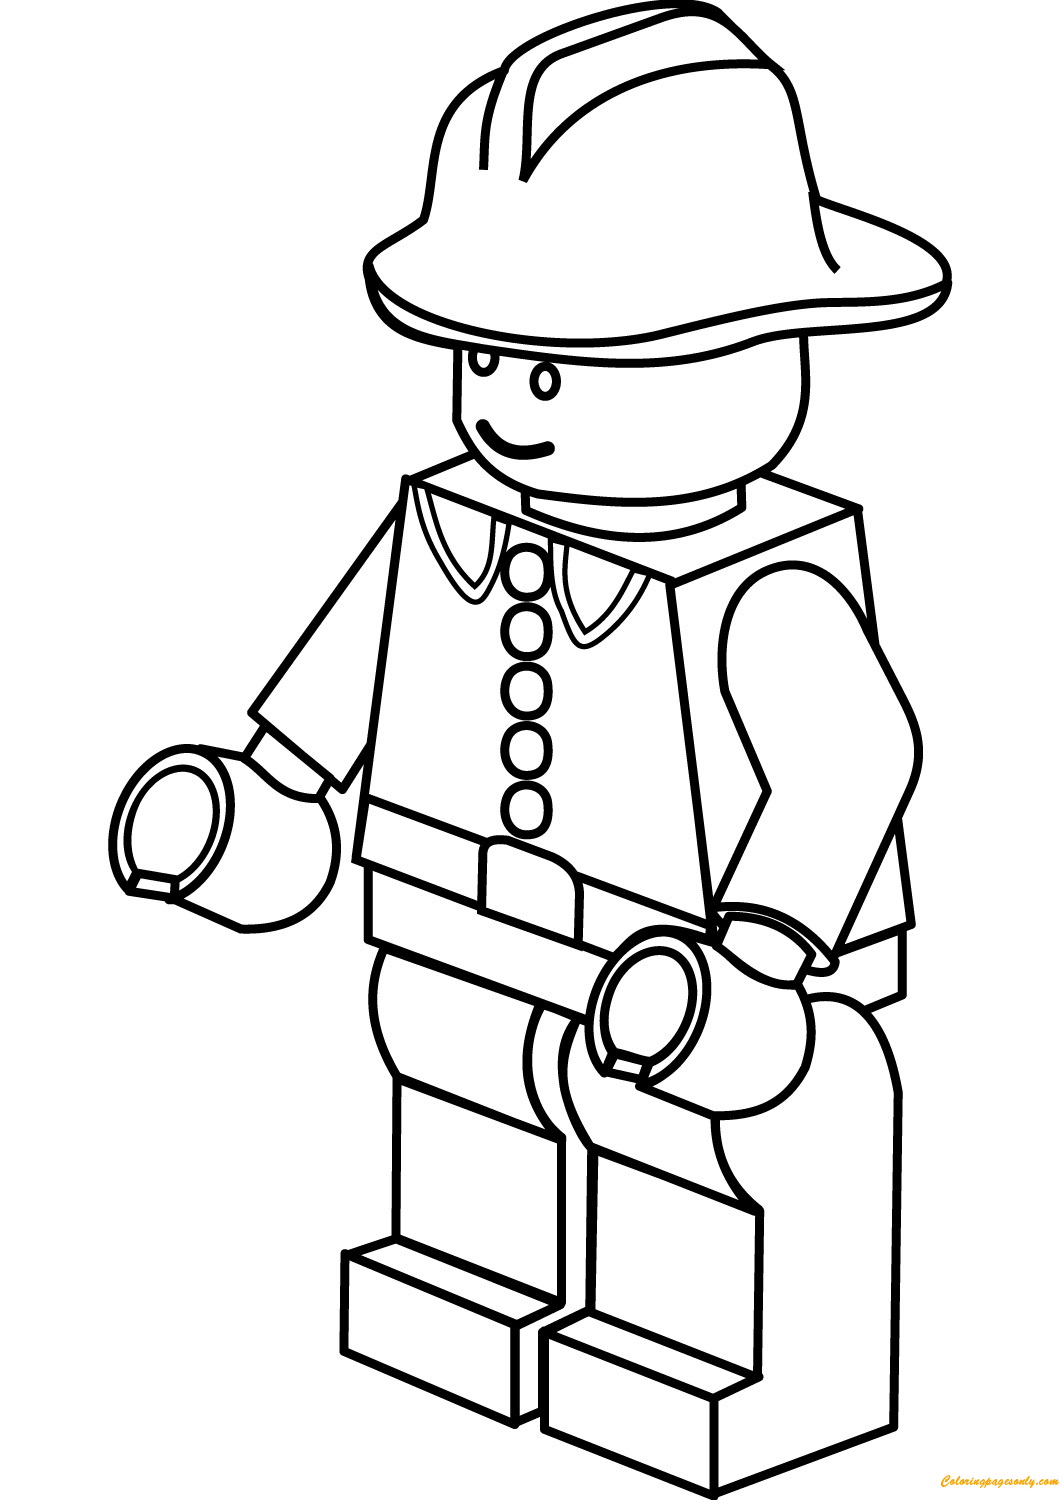 Lego City Firefighter Coloring Page